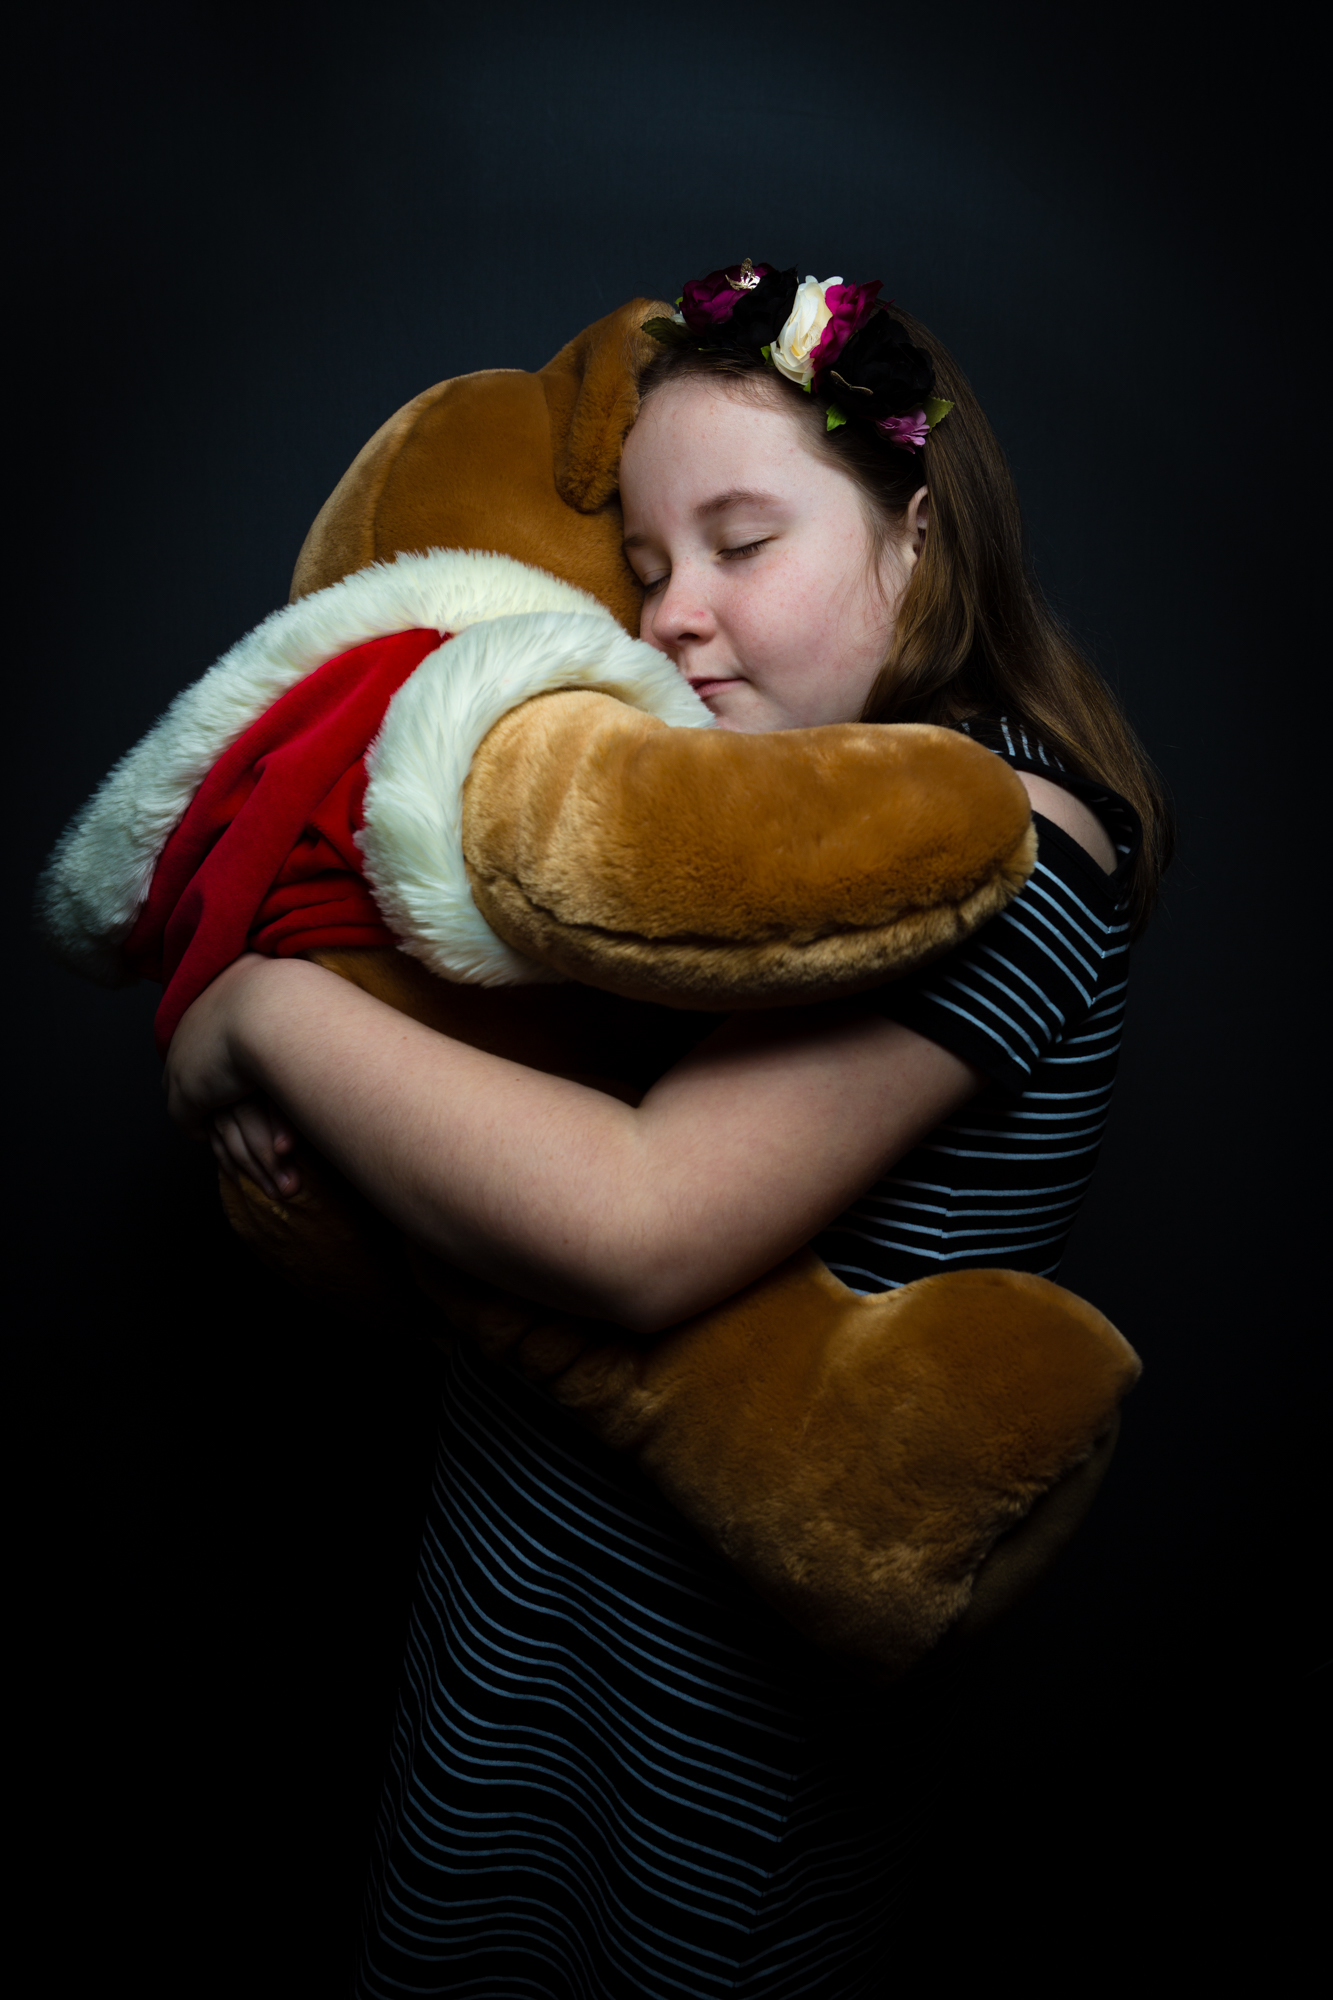 My beautiful daughter, Ashleigh, with the bear she has been photographed with every year since her birth ten years ago.